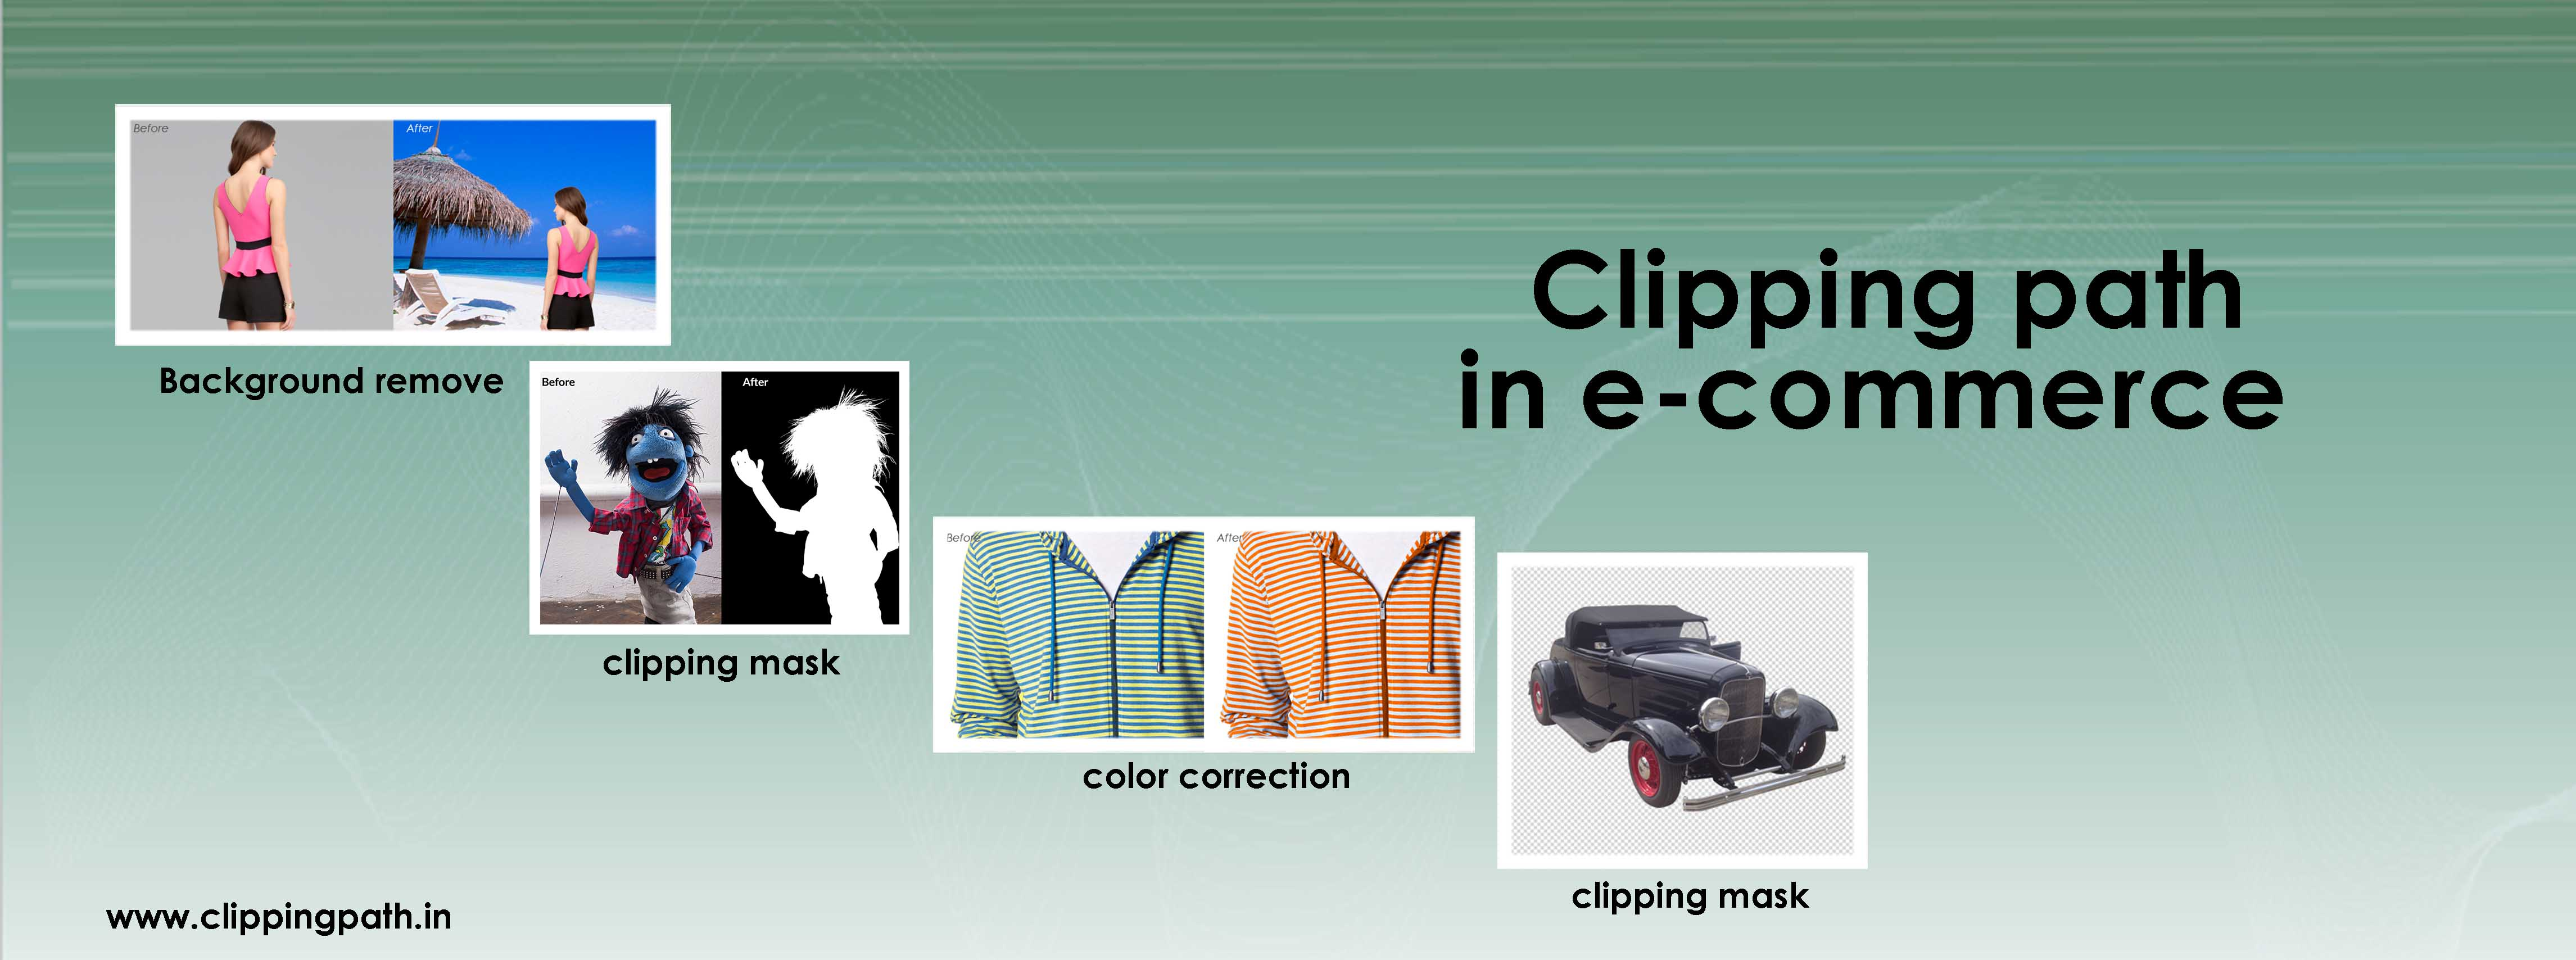 Clipping path in e-commerce image